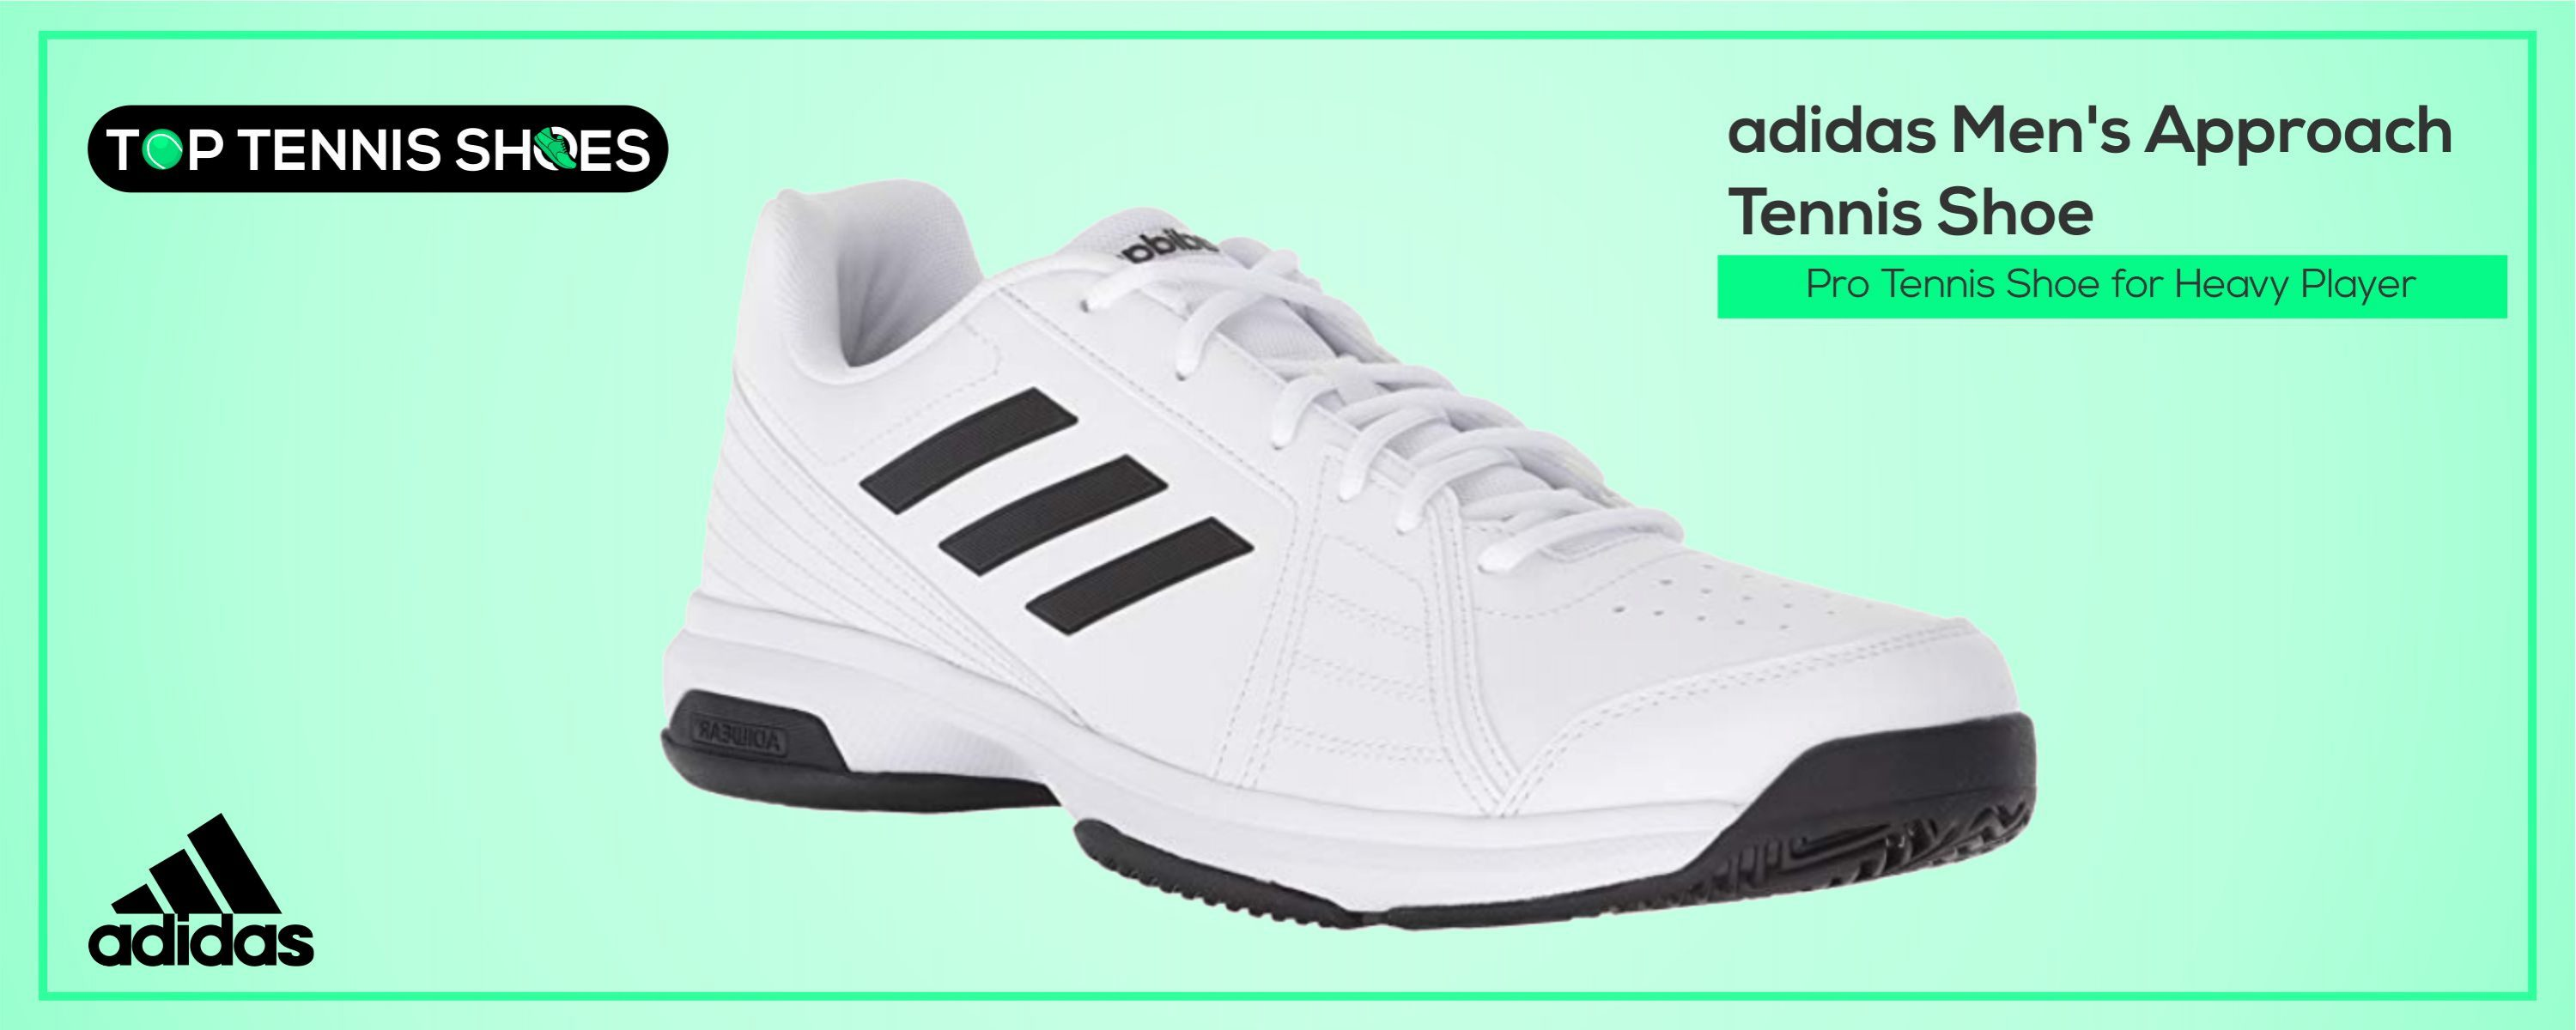 adidas tennis shoes for heavy players